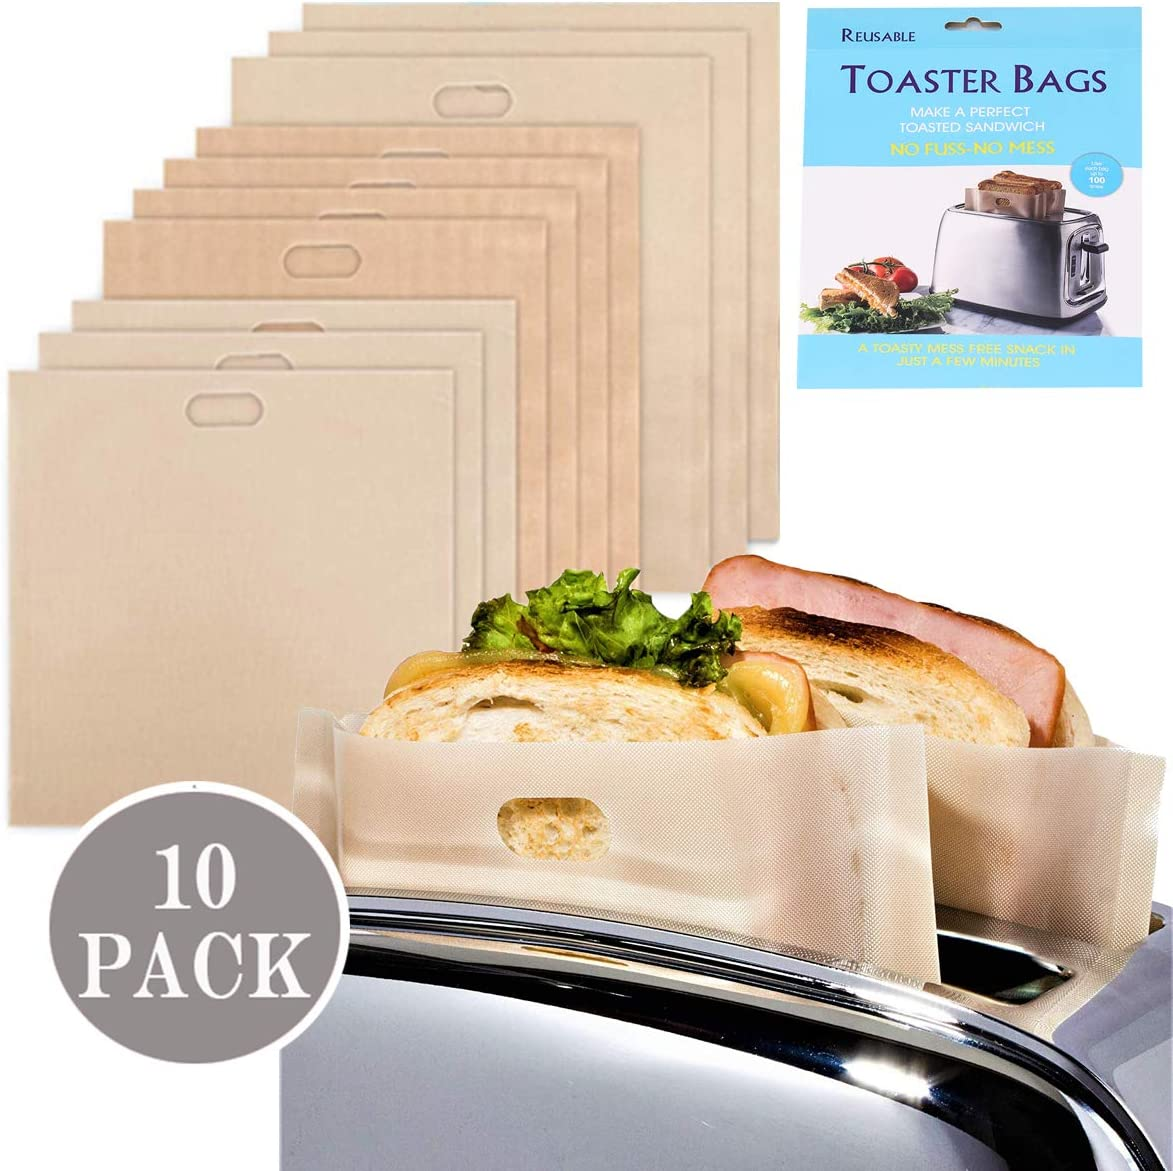 Toastie Bags for Toaster Grill Bags Non-Stick Washable Teflon Heat Resistant Toaster Bag Reusable Gluten Free Snacks Storage Bags for Toast Sandwich, Suit for Microwave Grill Toaster Reuse 100 Times